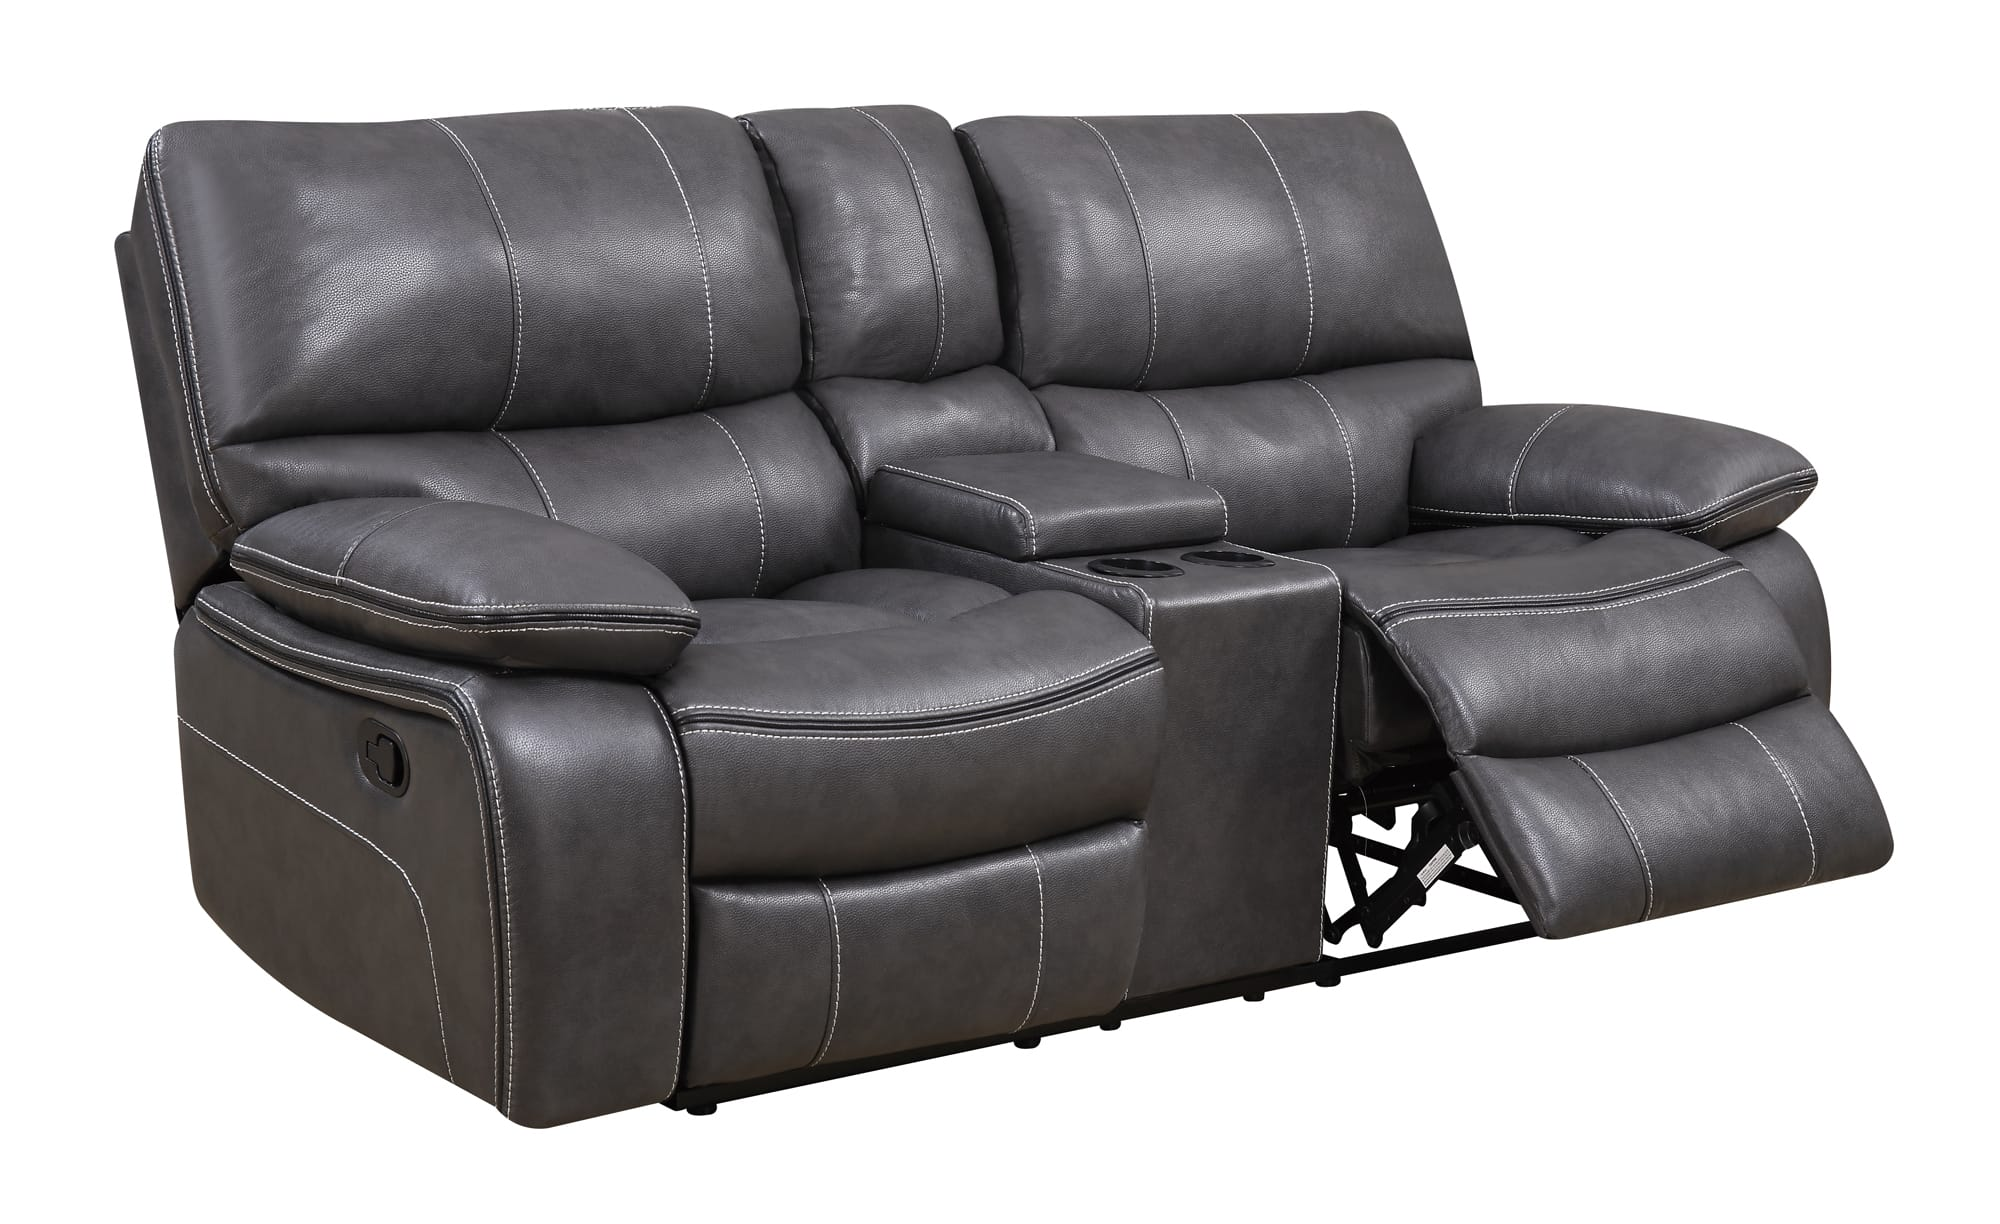 U0040 grey black leather console reclining loveseat by global furniture Leather sofa and loveseat recliner